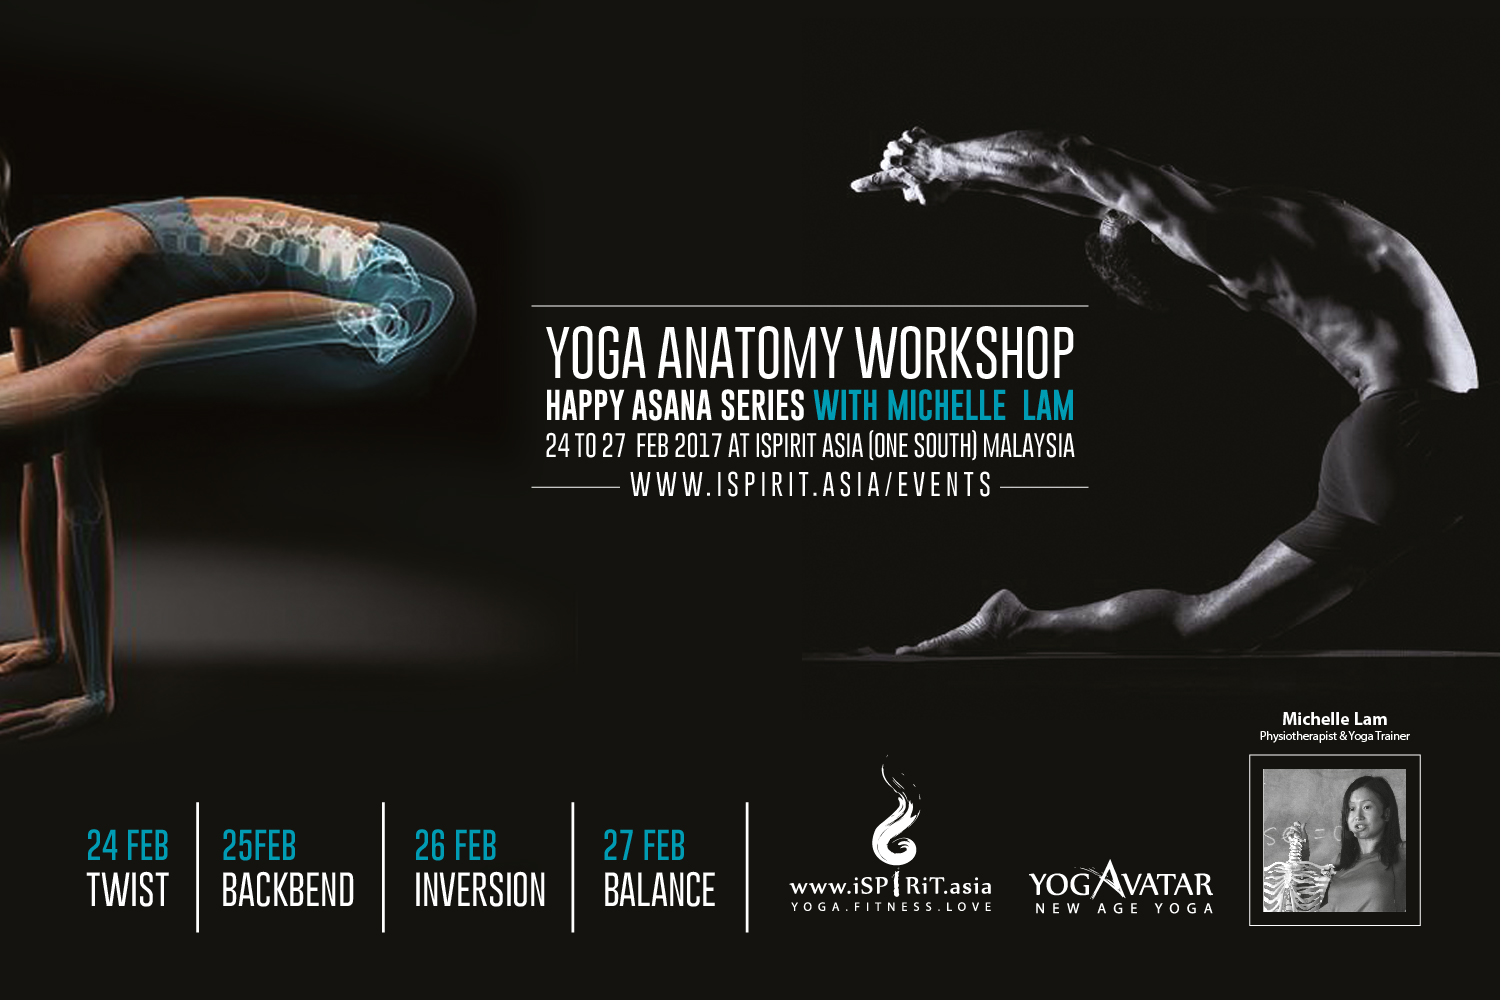 24~27 Feb 2017 @Malaysia: Yoga Anatomy Workshop HAPPY ASANA SERIES ...